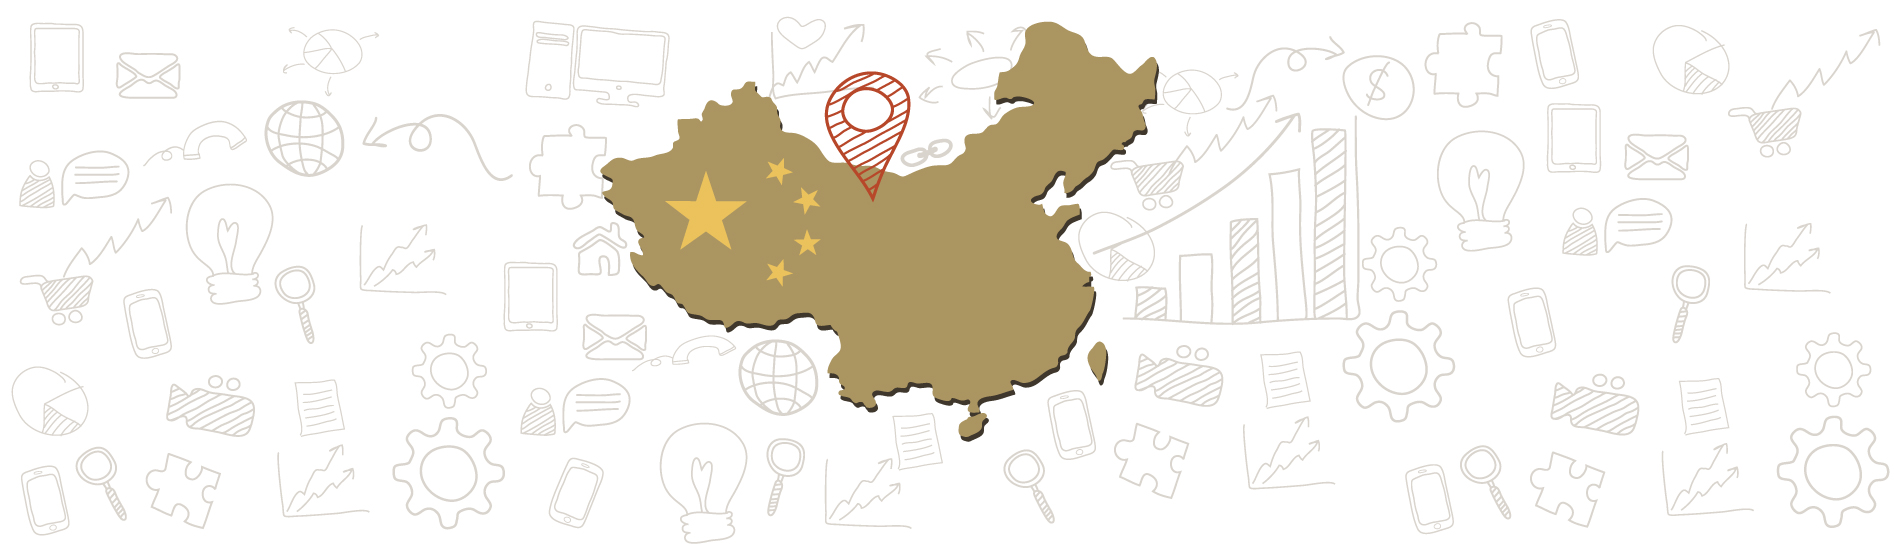 How to do cross-border e-commerce in China? (part 2)